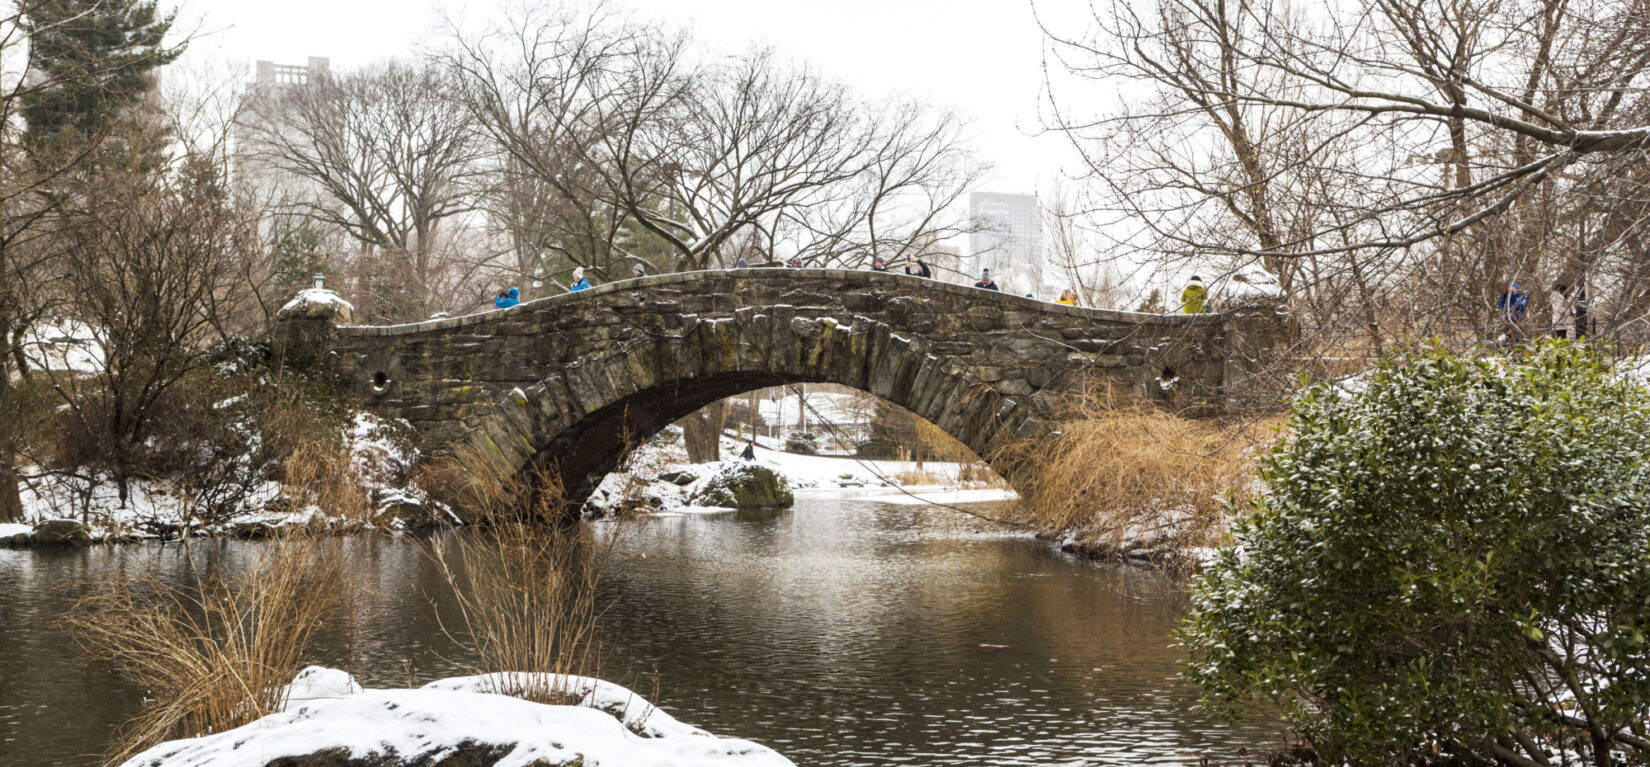 Gapstow Bridge shown in winter spanning the Pond